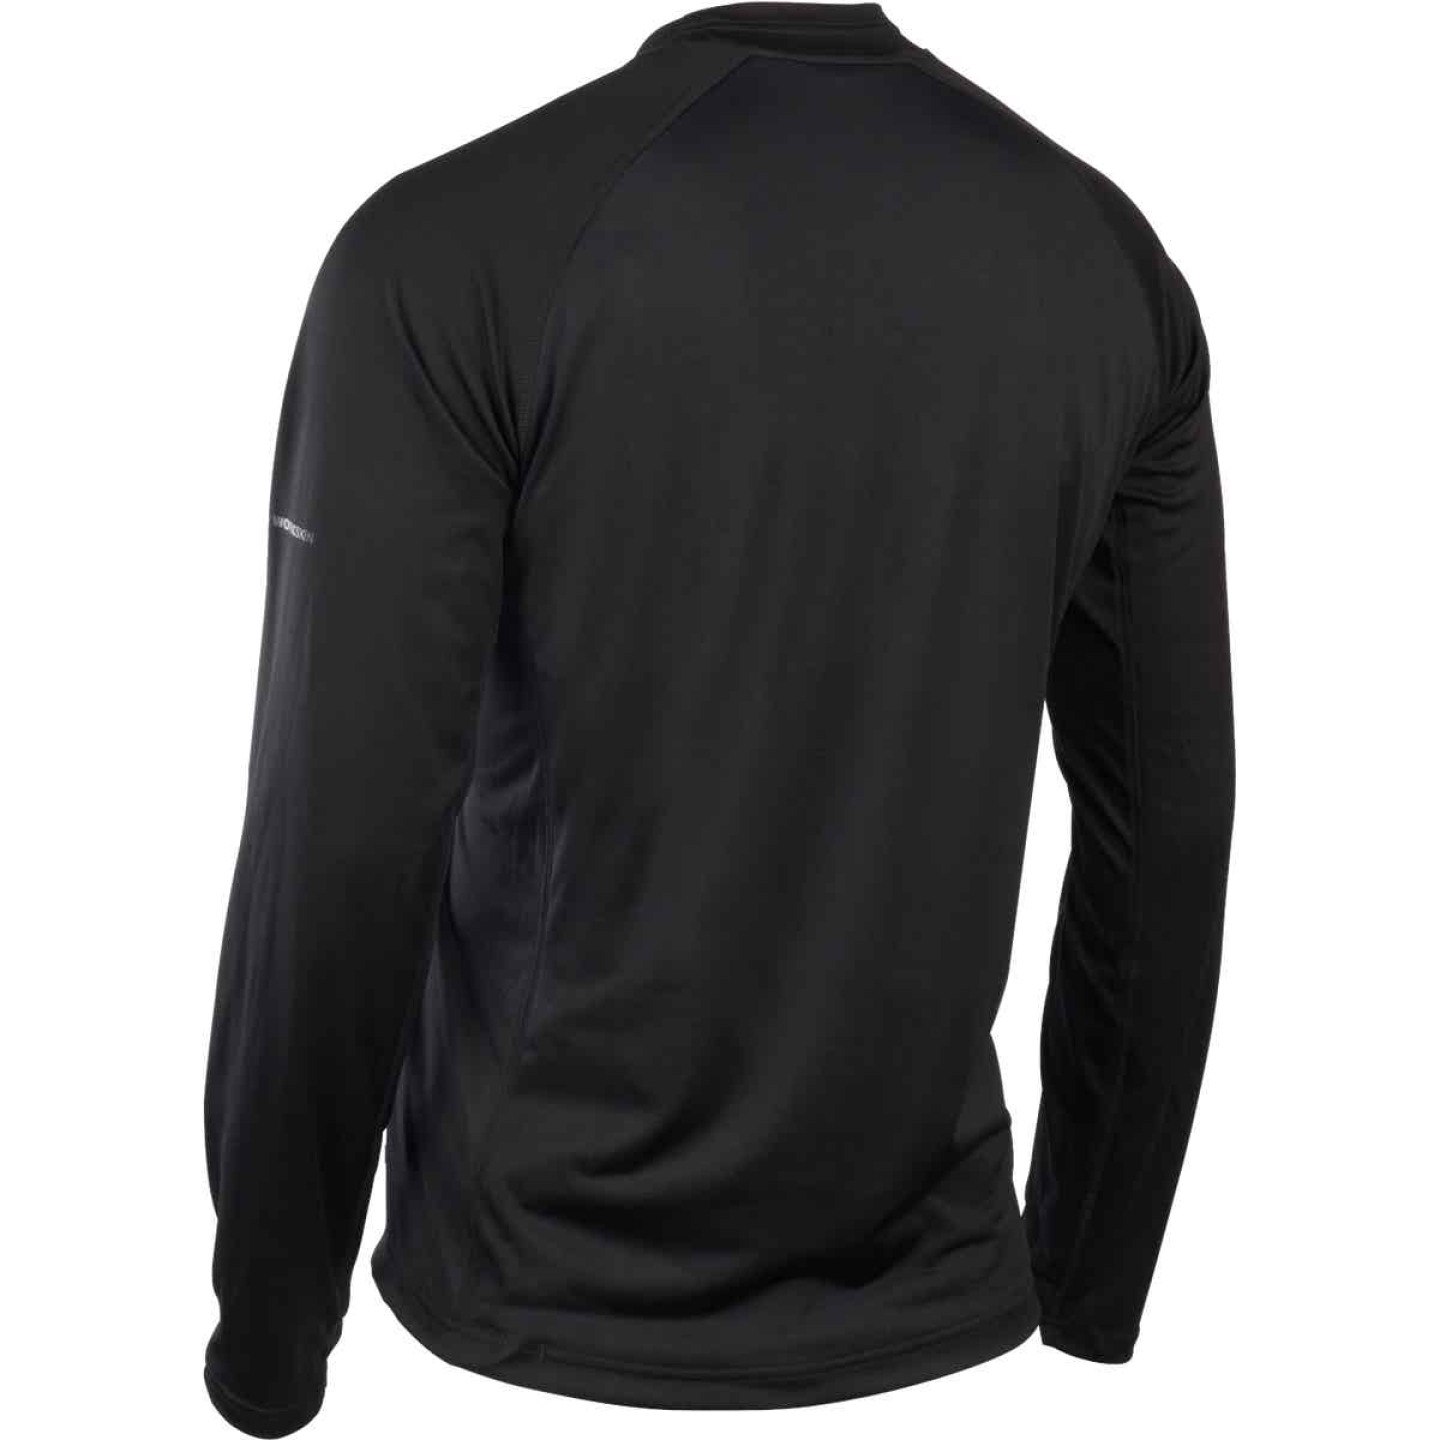 Milwaukee Workskin XL Black Heated Midweight Base Layer Shirt Image 7